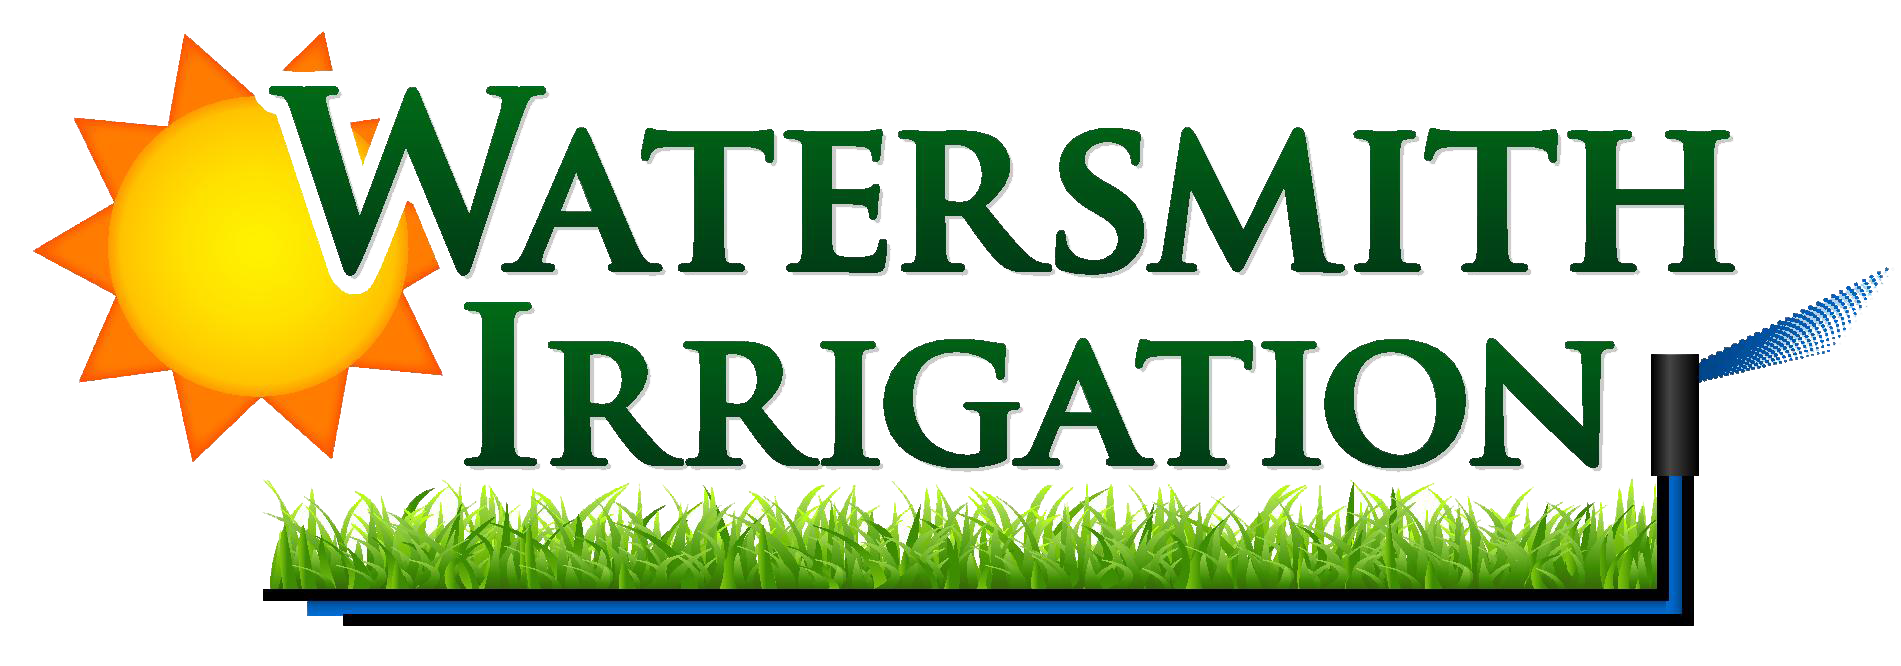 Watersmith Irrigation